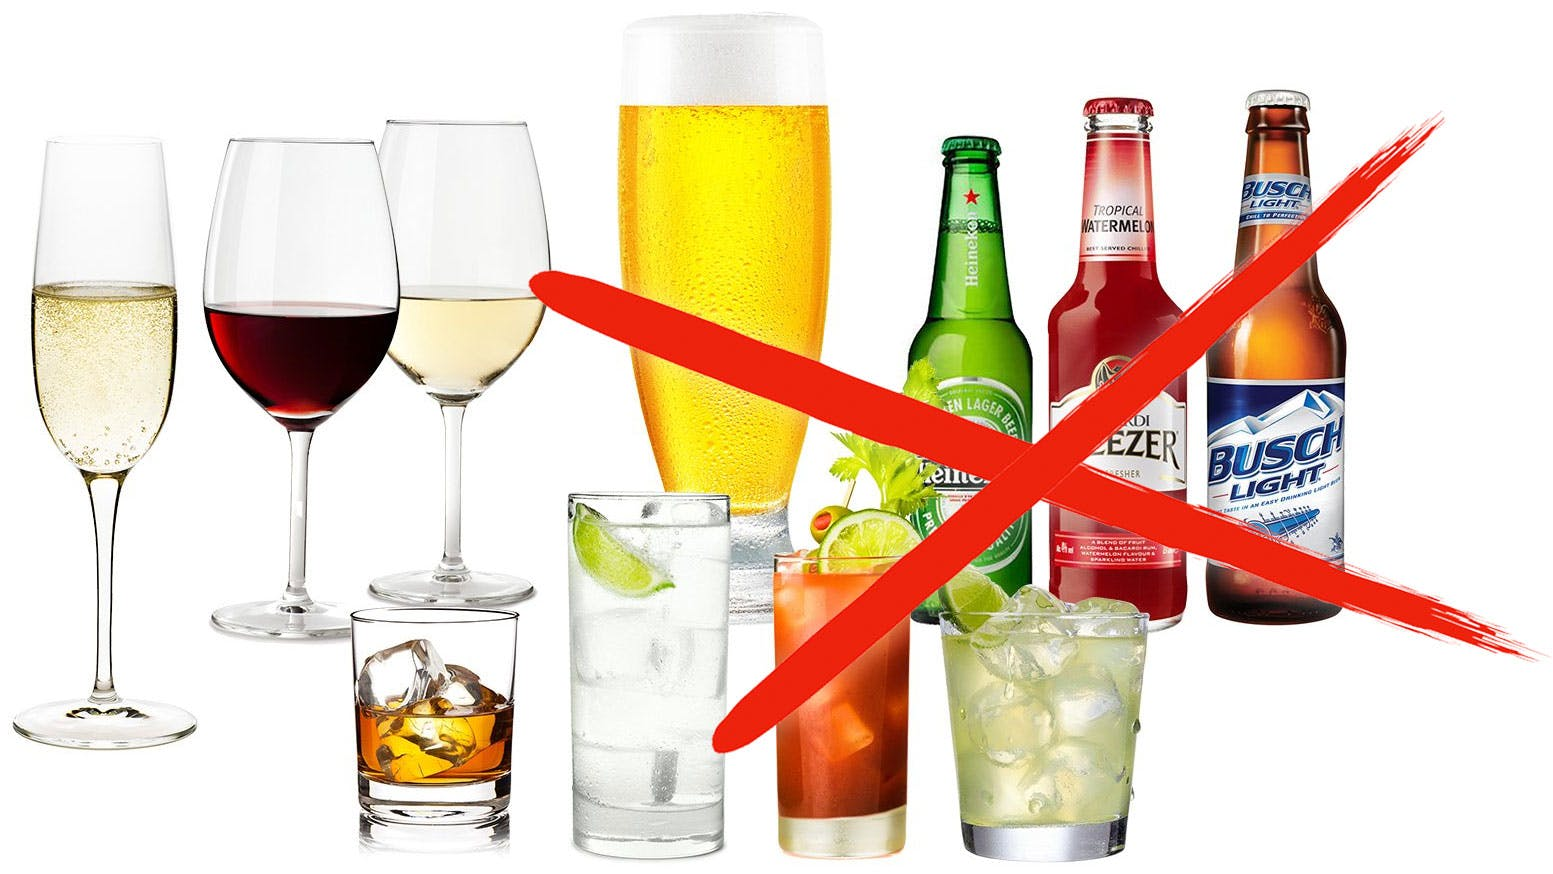 #7 guide: Low-carb alcohol